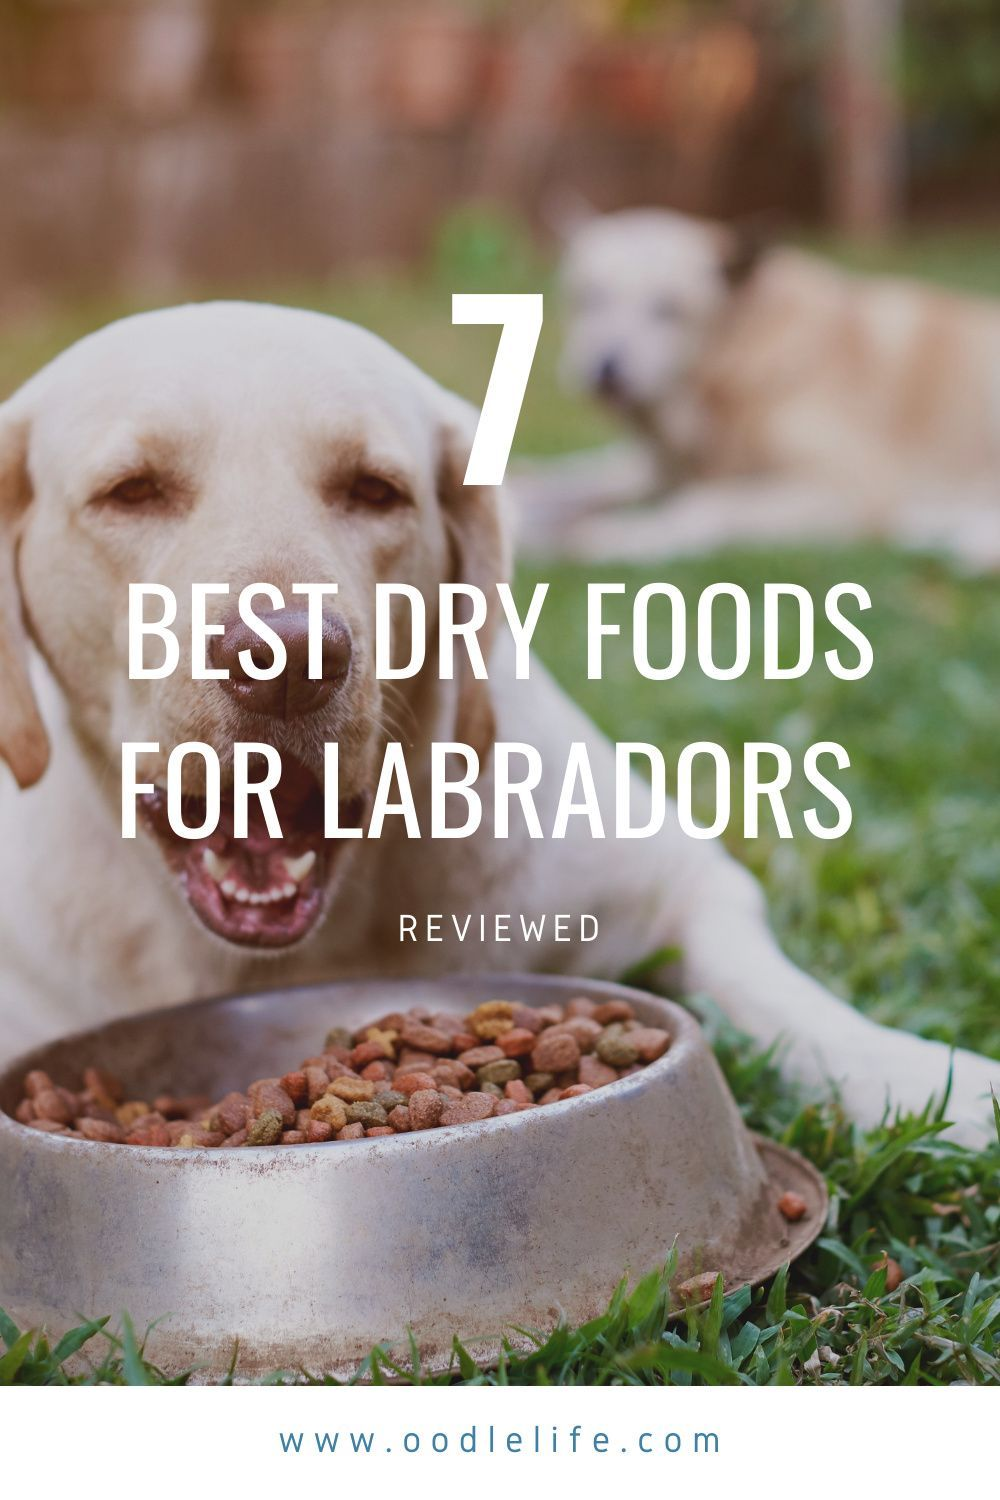 The 7 Best Dry Food For Labrador Reviewed Comparison Oodle Dogs Dog Nutrition Best Dry Dog Food Diet Dog Food